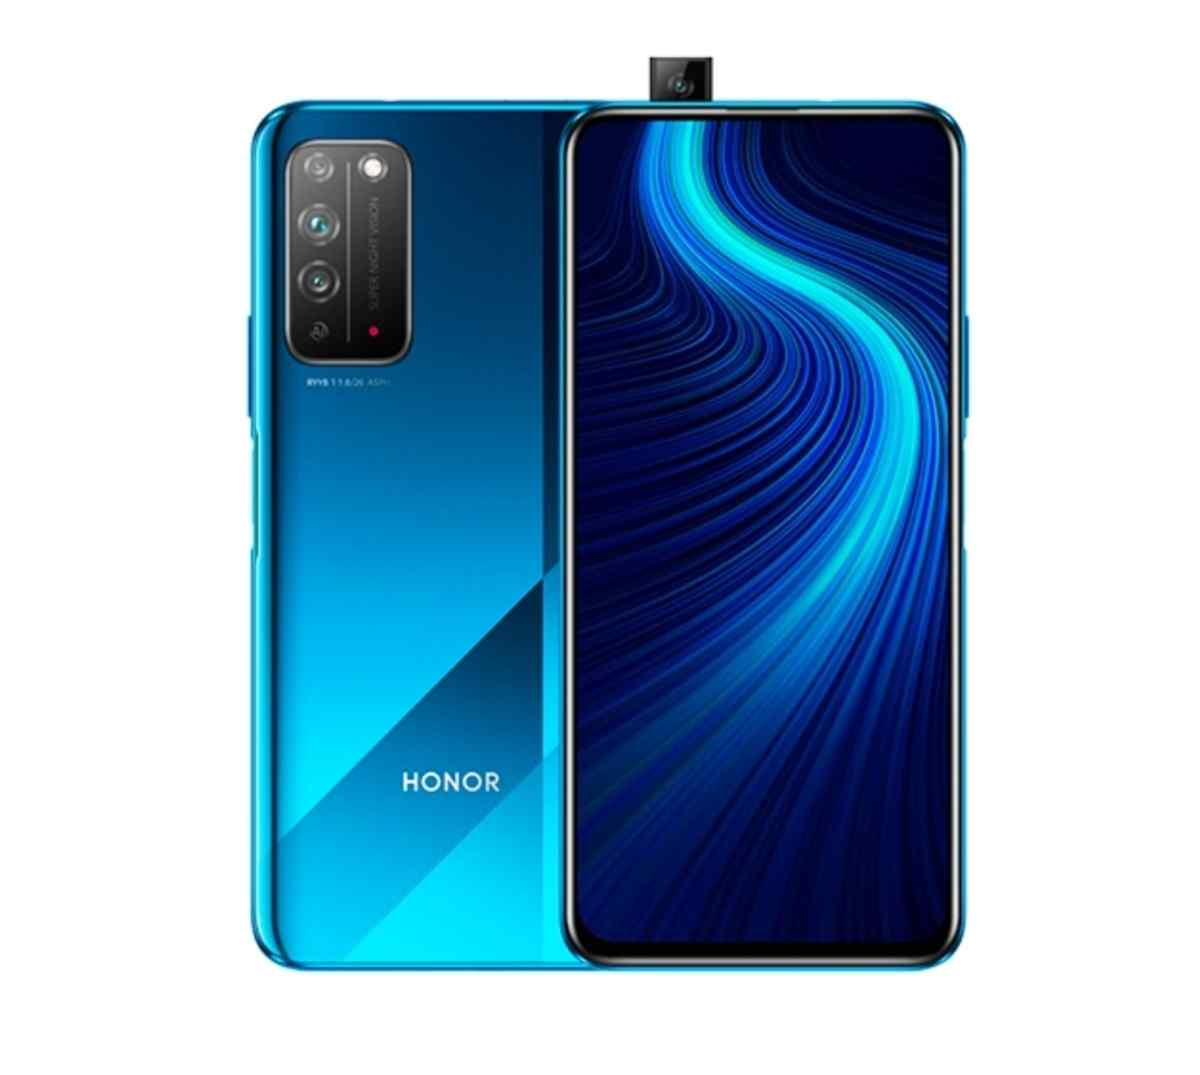 honor x10 max 5g price in Nigeria, Honor x10 max 5g, how much is honor x10 max 5g in Nigeria, price of honor x10 max 5g in Nigeria, honor x10 max 5g specs and price in Nigeria, honor x10 max 5g specs, honor x10 max 5g price, specs and price of Honor x10 max 5g, honor x10 max 5g full specification, Honor x10 max 5g and price in Nigeria, Honor x10 max 5g in Nigeria